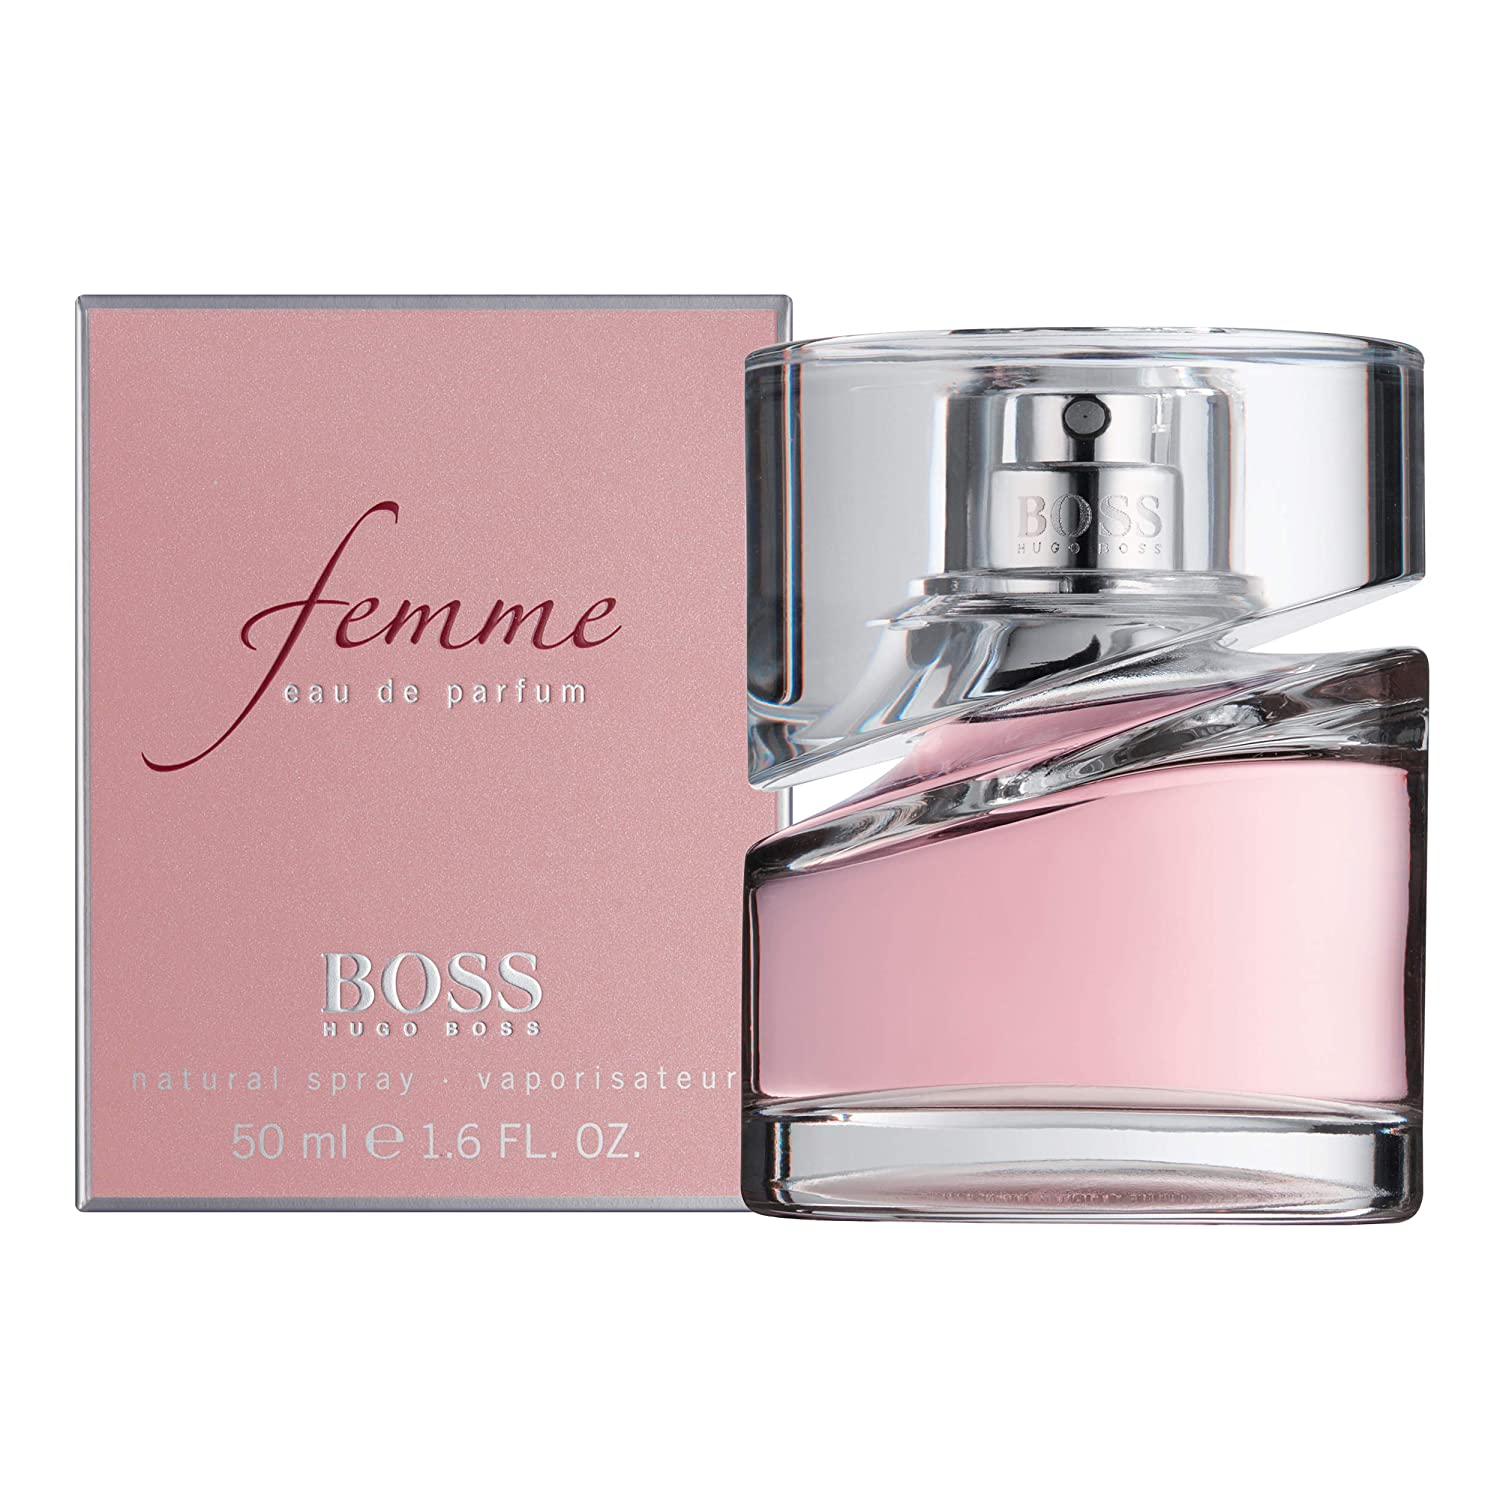 56d26a004db06 Hugo Boss Femme Eau de Parfum Spray for Women 50 ml  Amazon.co.uk  Beauty